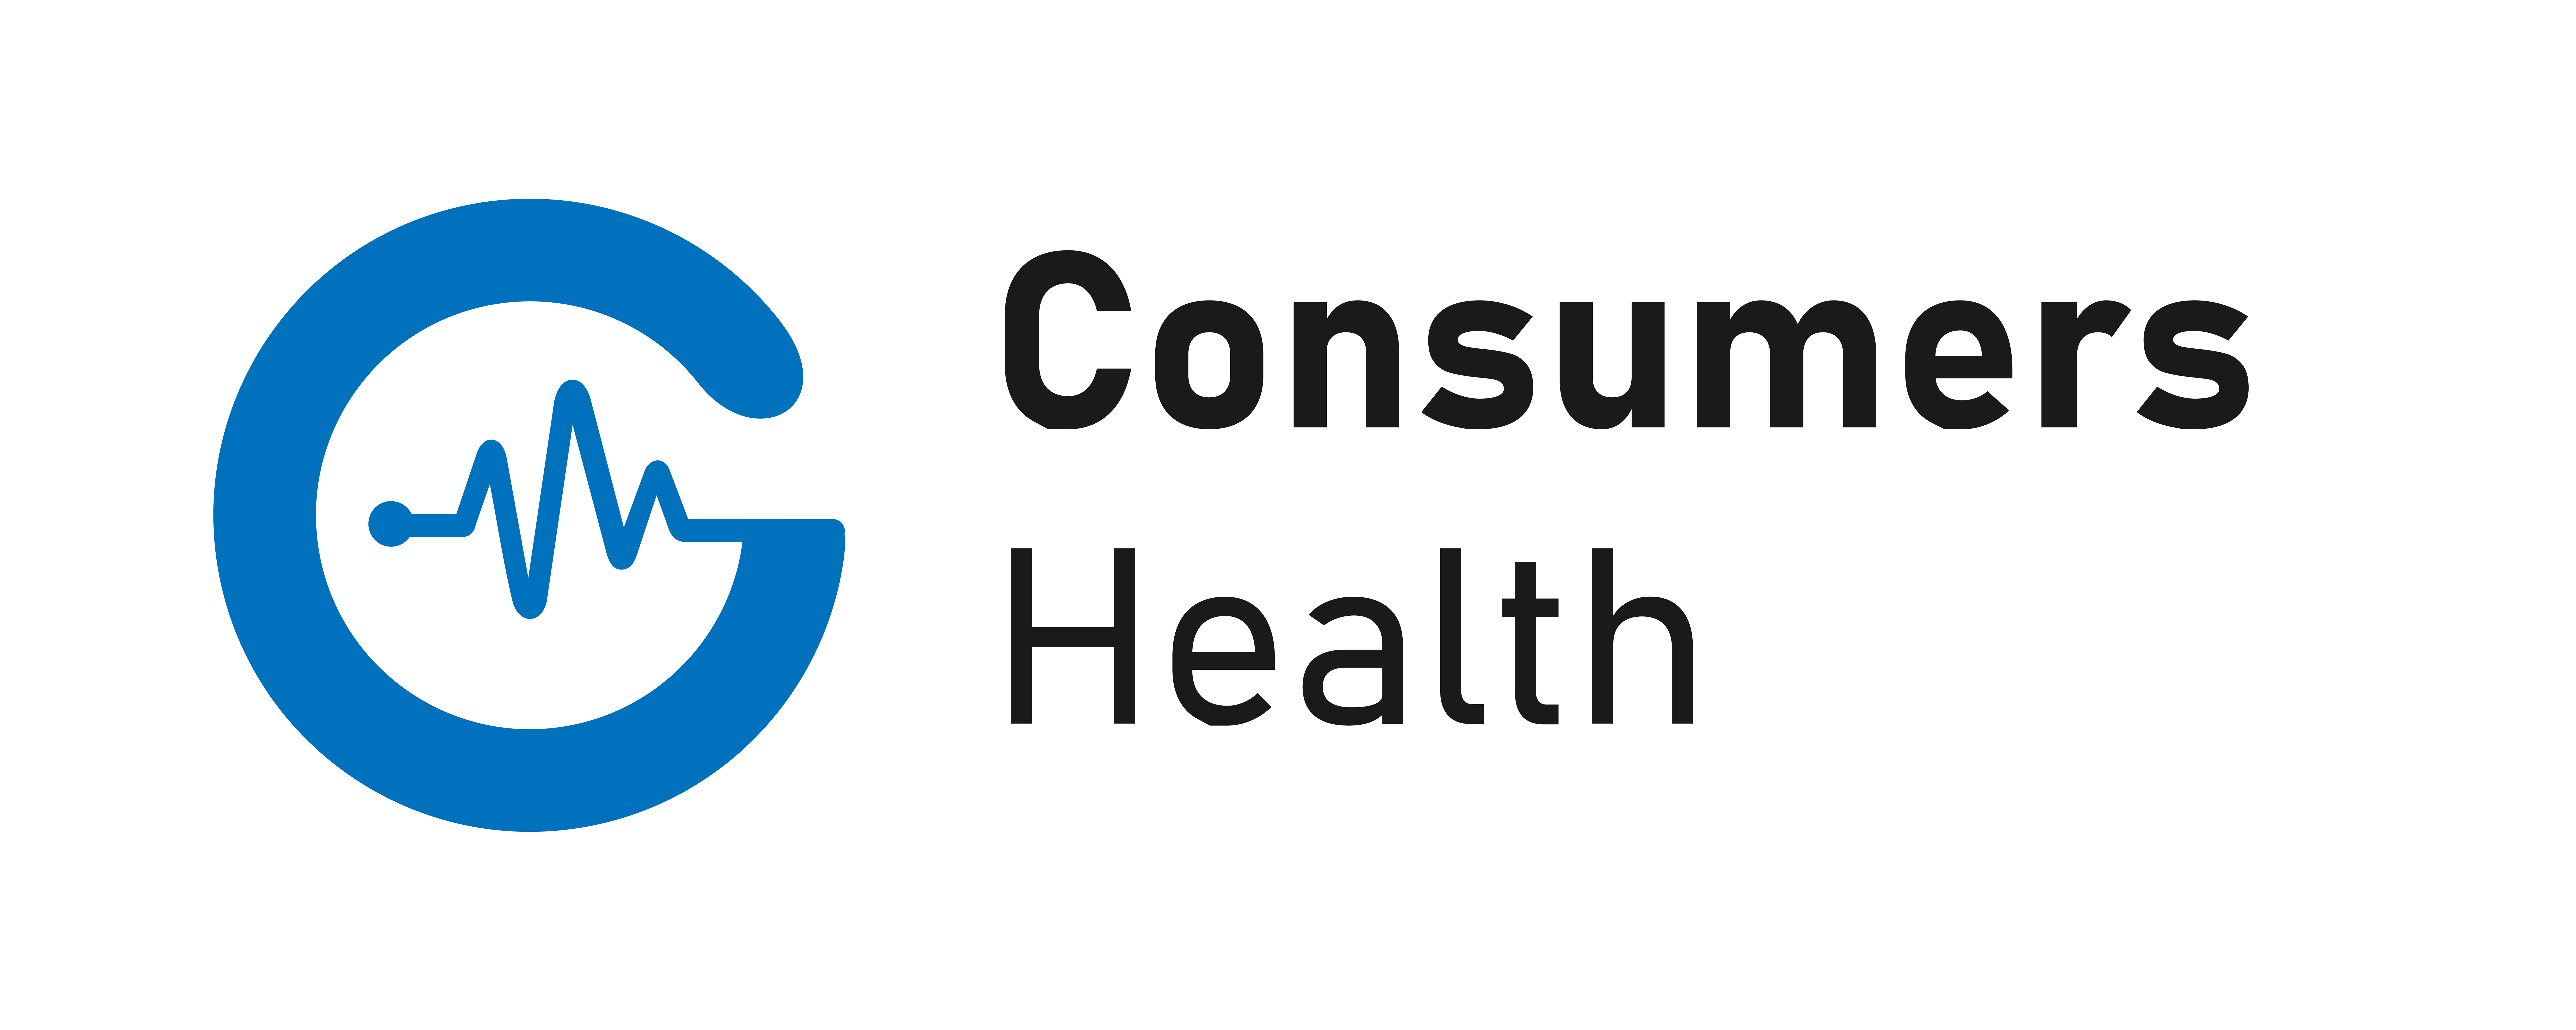 Consumers Health